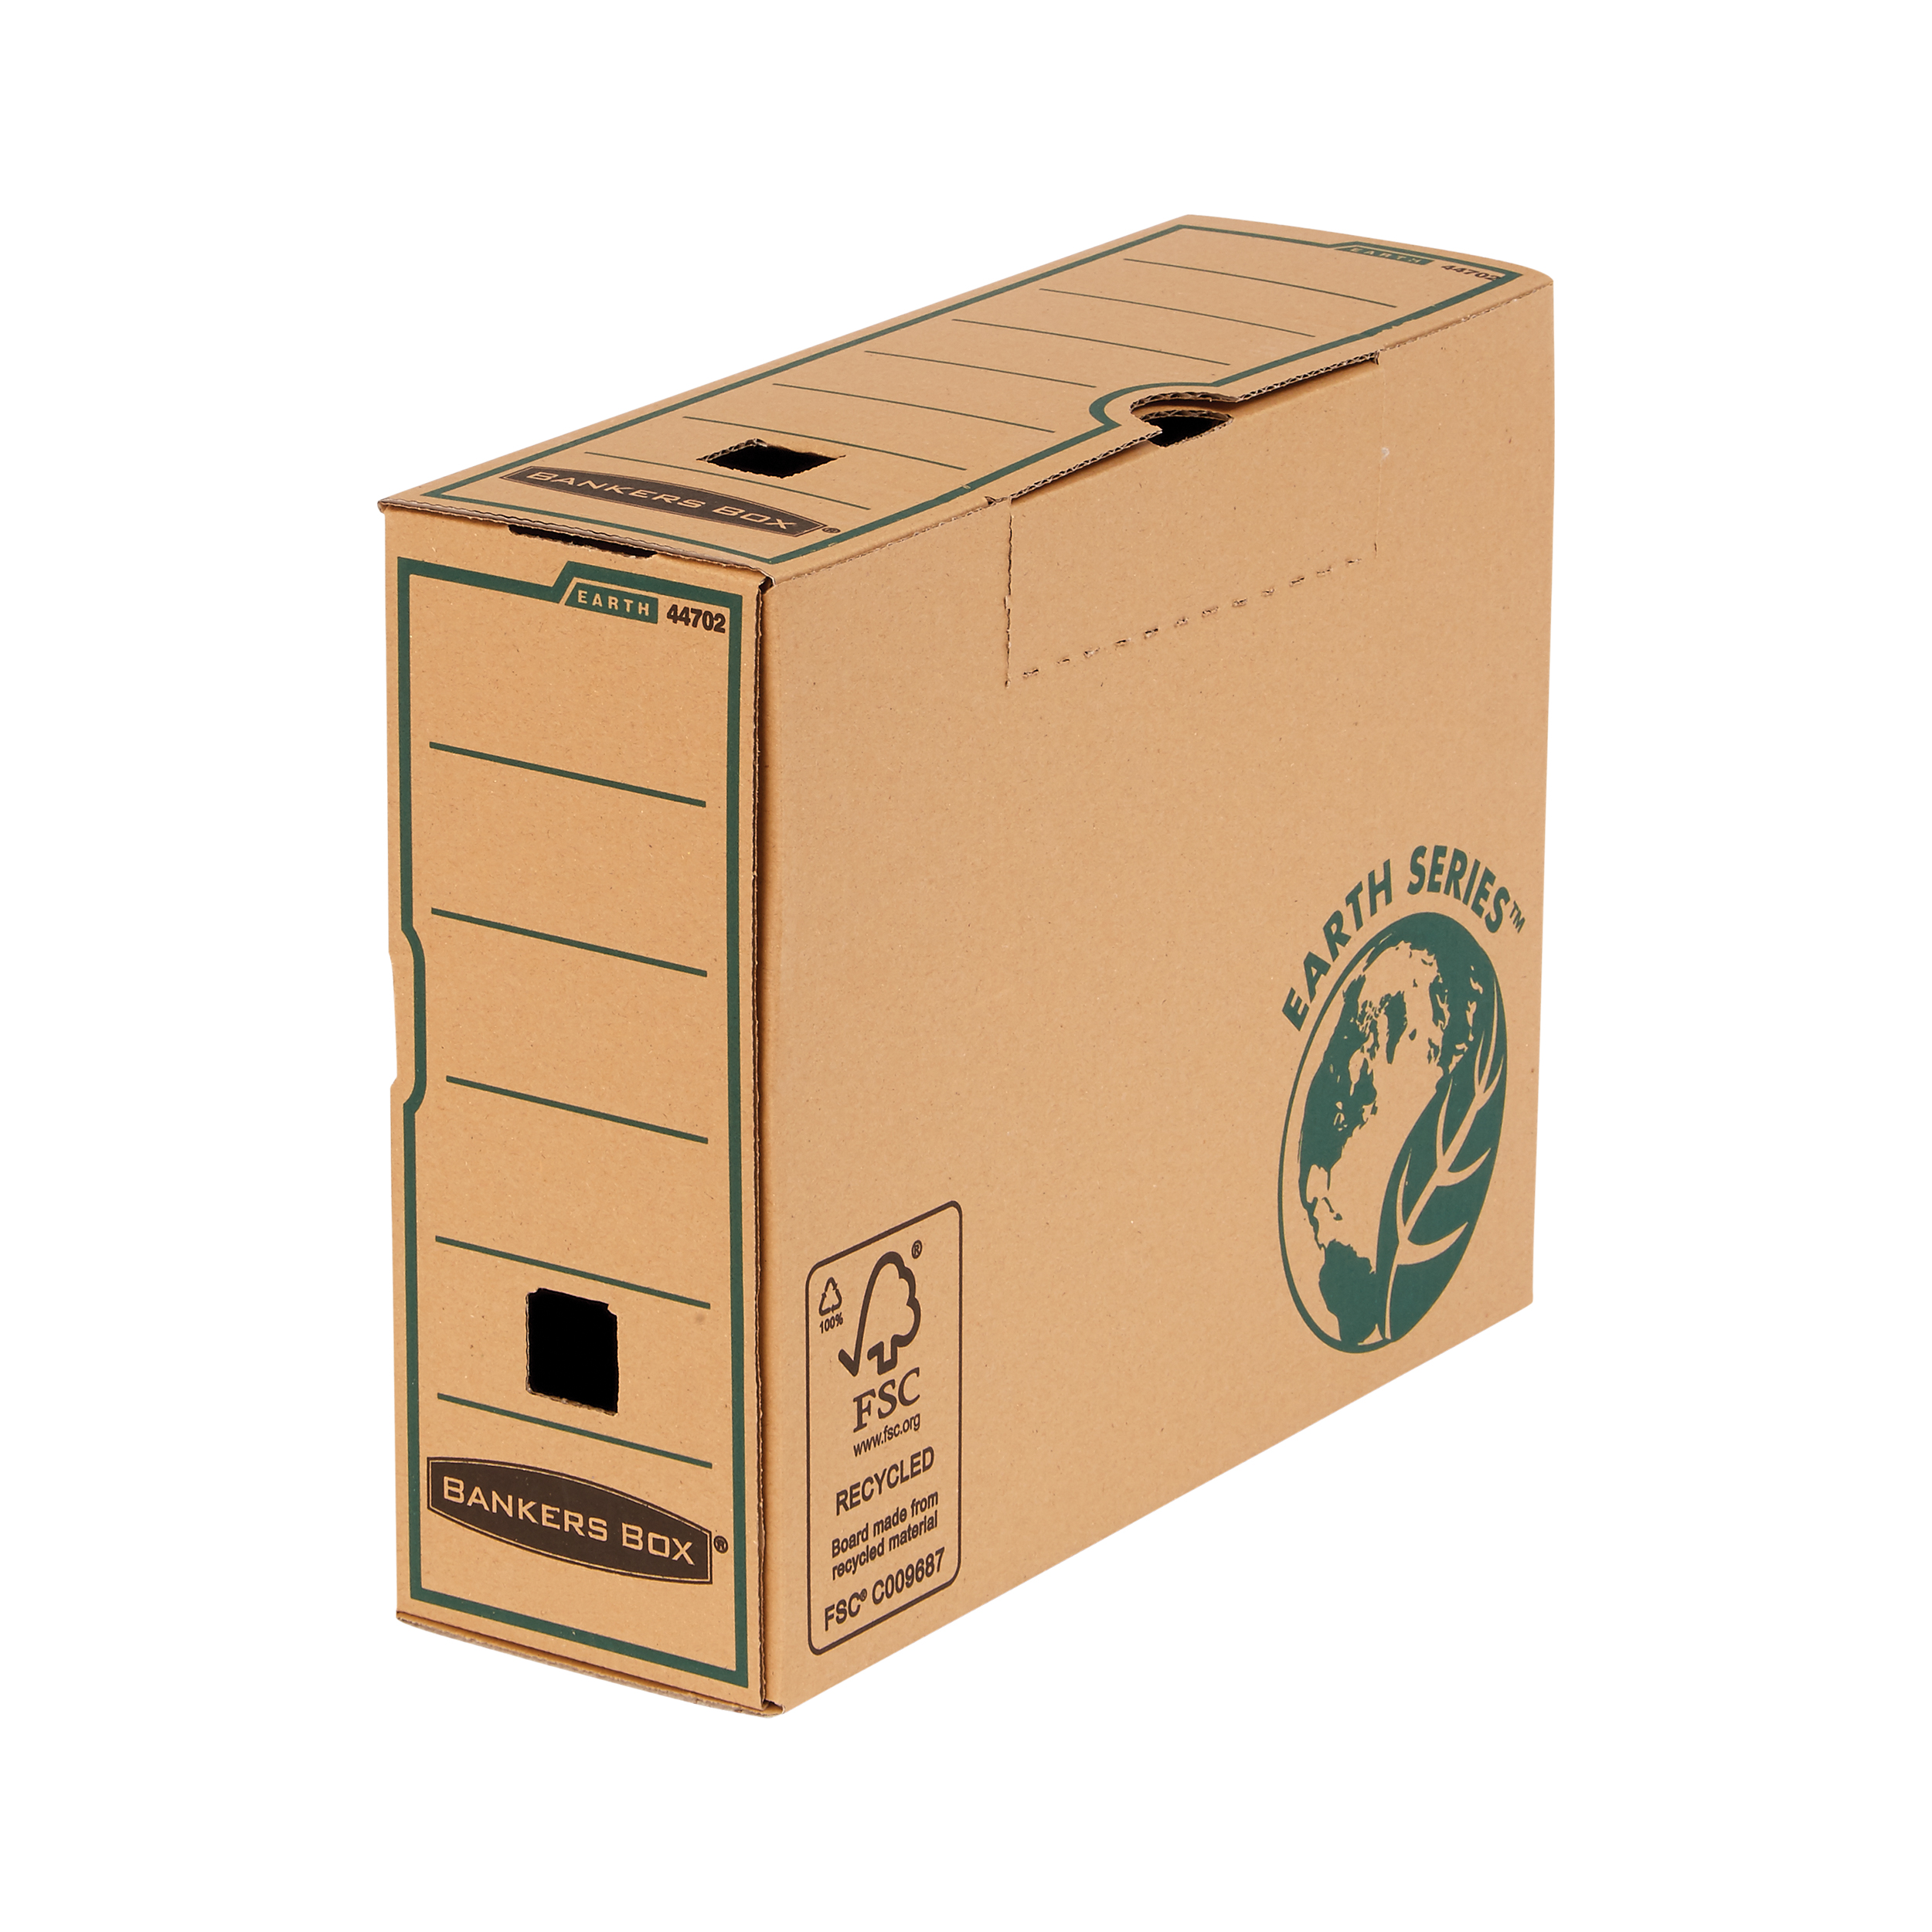 Bankers Box Earth Series by Fellowes Trnsf Box Files 100mm Brn Ref 4470201 [Pack 10] [2 for 1] Jan-Mar 20